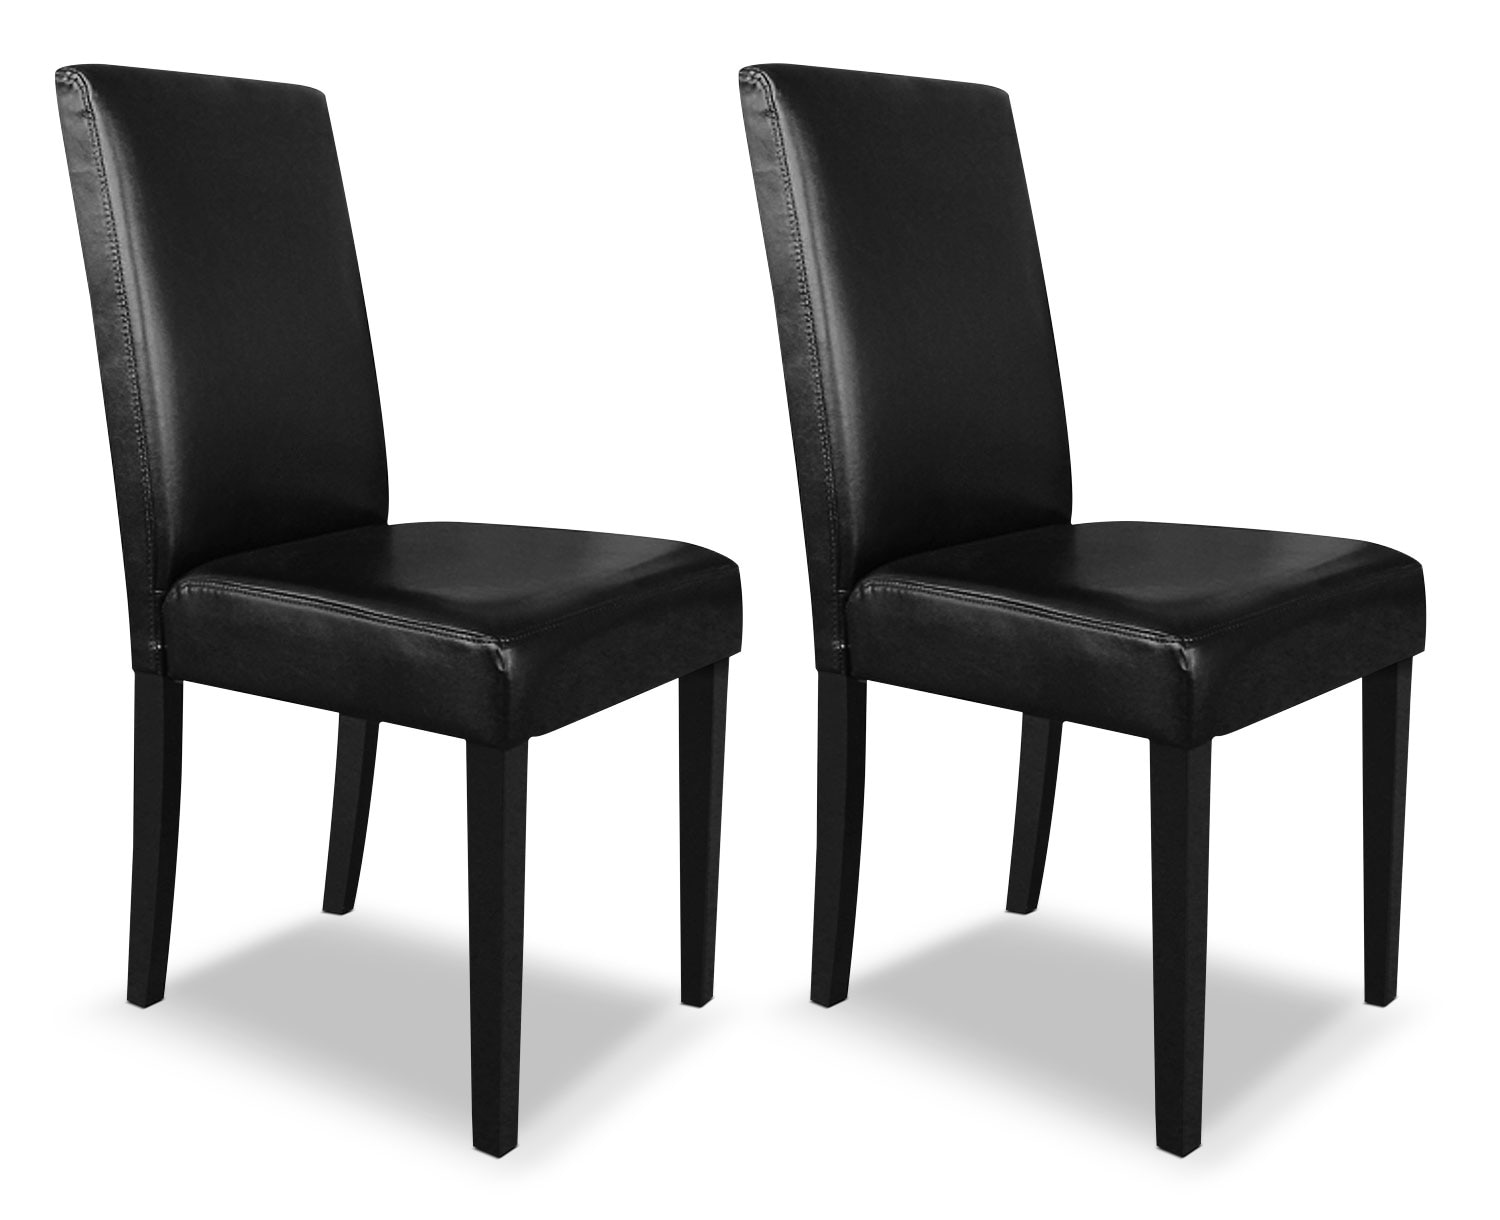 leather kitchen chairs Black Faux Leather Accent Dining Chair Set of 2